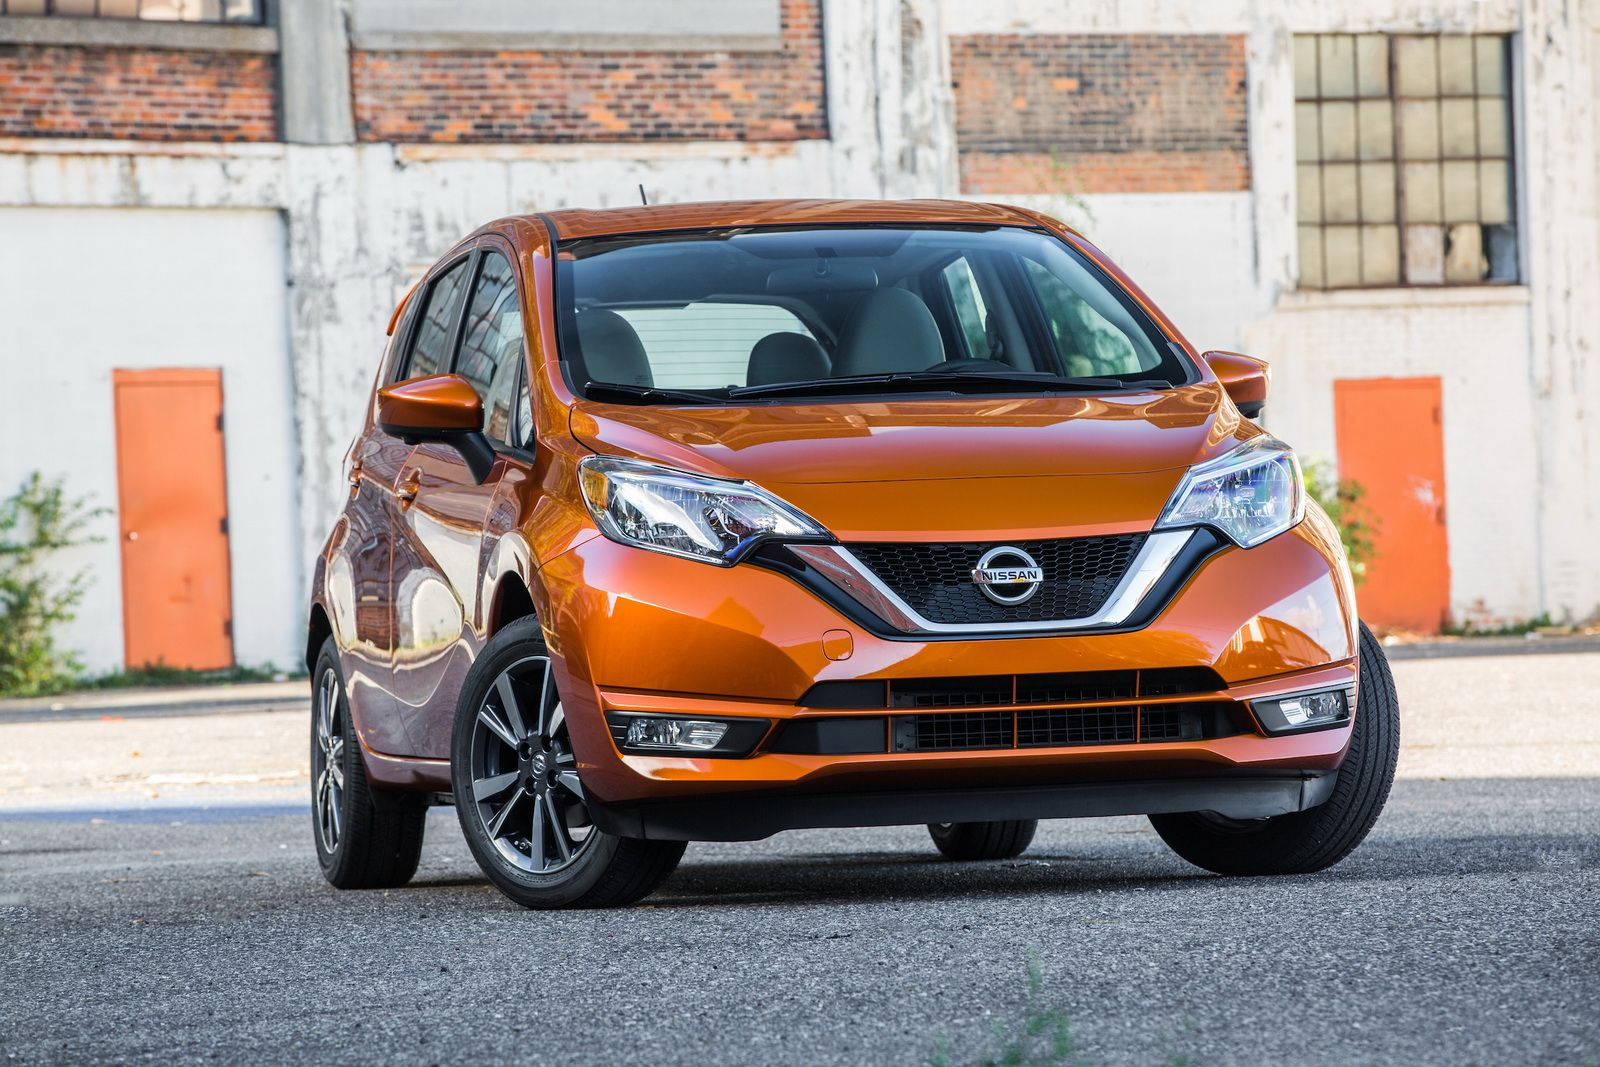 2017 Nissan Versa Note And Juke Black Pearl Edition Heading To La Auto Show Carscoops In 2020 Nissan Versa Nissan Note Nissan